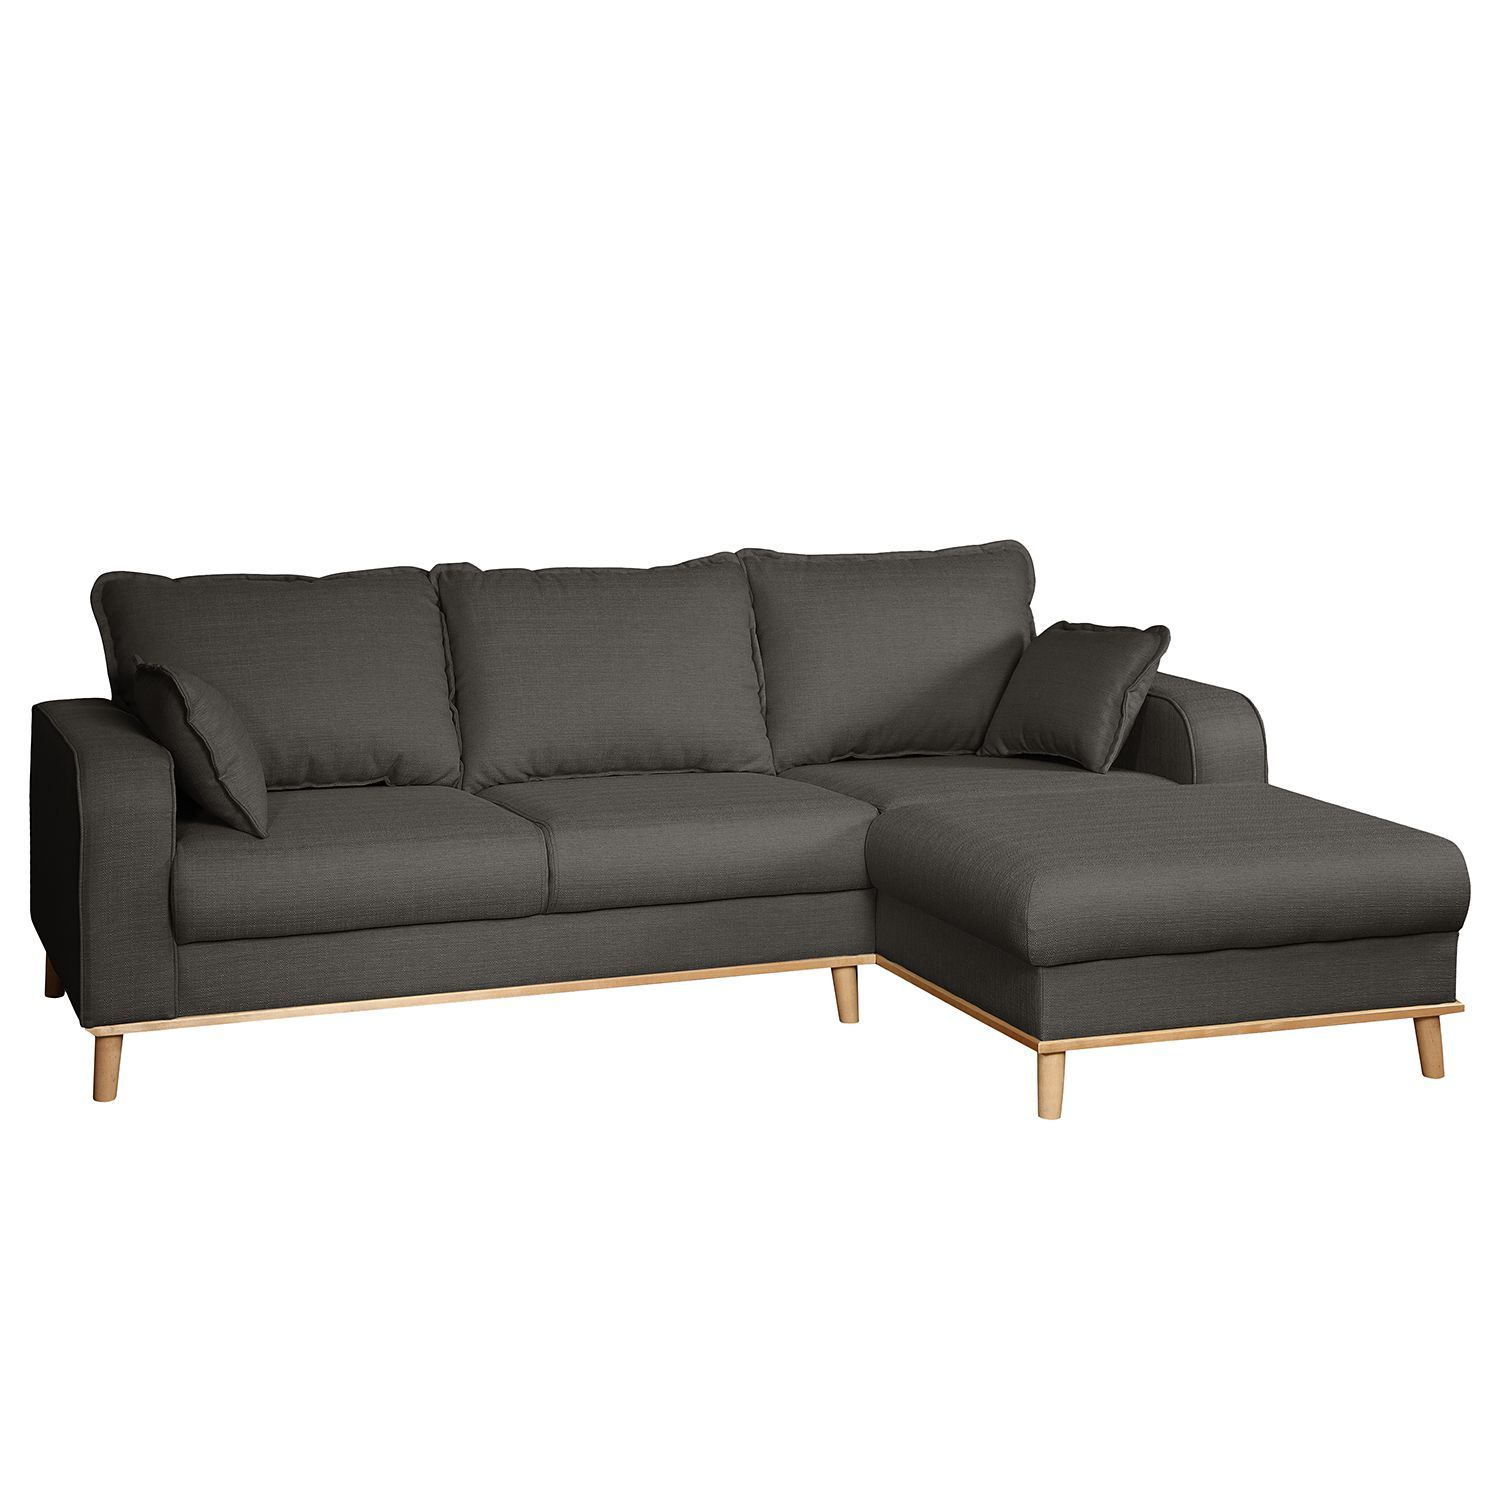 Ecksofa Lauris Pin By Ladendirekt On Sofas Couches Sofa Couch Art